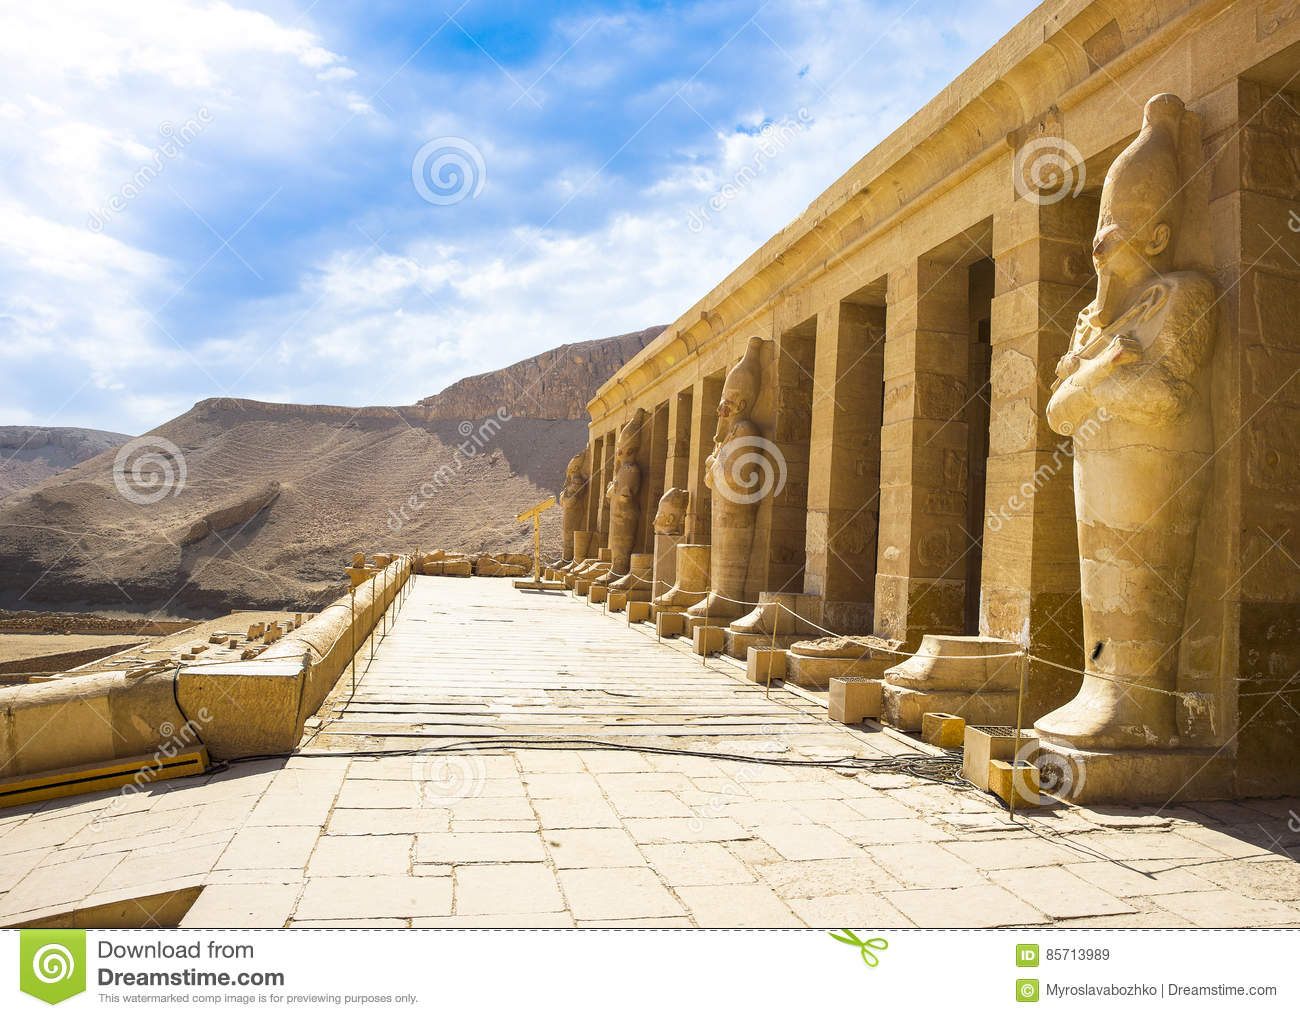 an introduction to the egyptian temple of queen hatshepsut Queen hatshepsut: how should history  hatshepsut was one of the greatest egyptian pharaohs  trade with other countries also led to the introduction of new ideas.